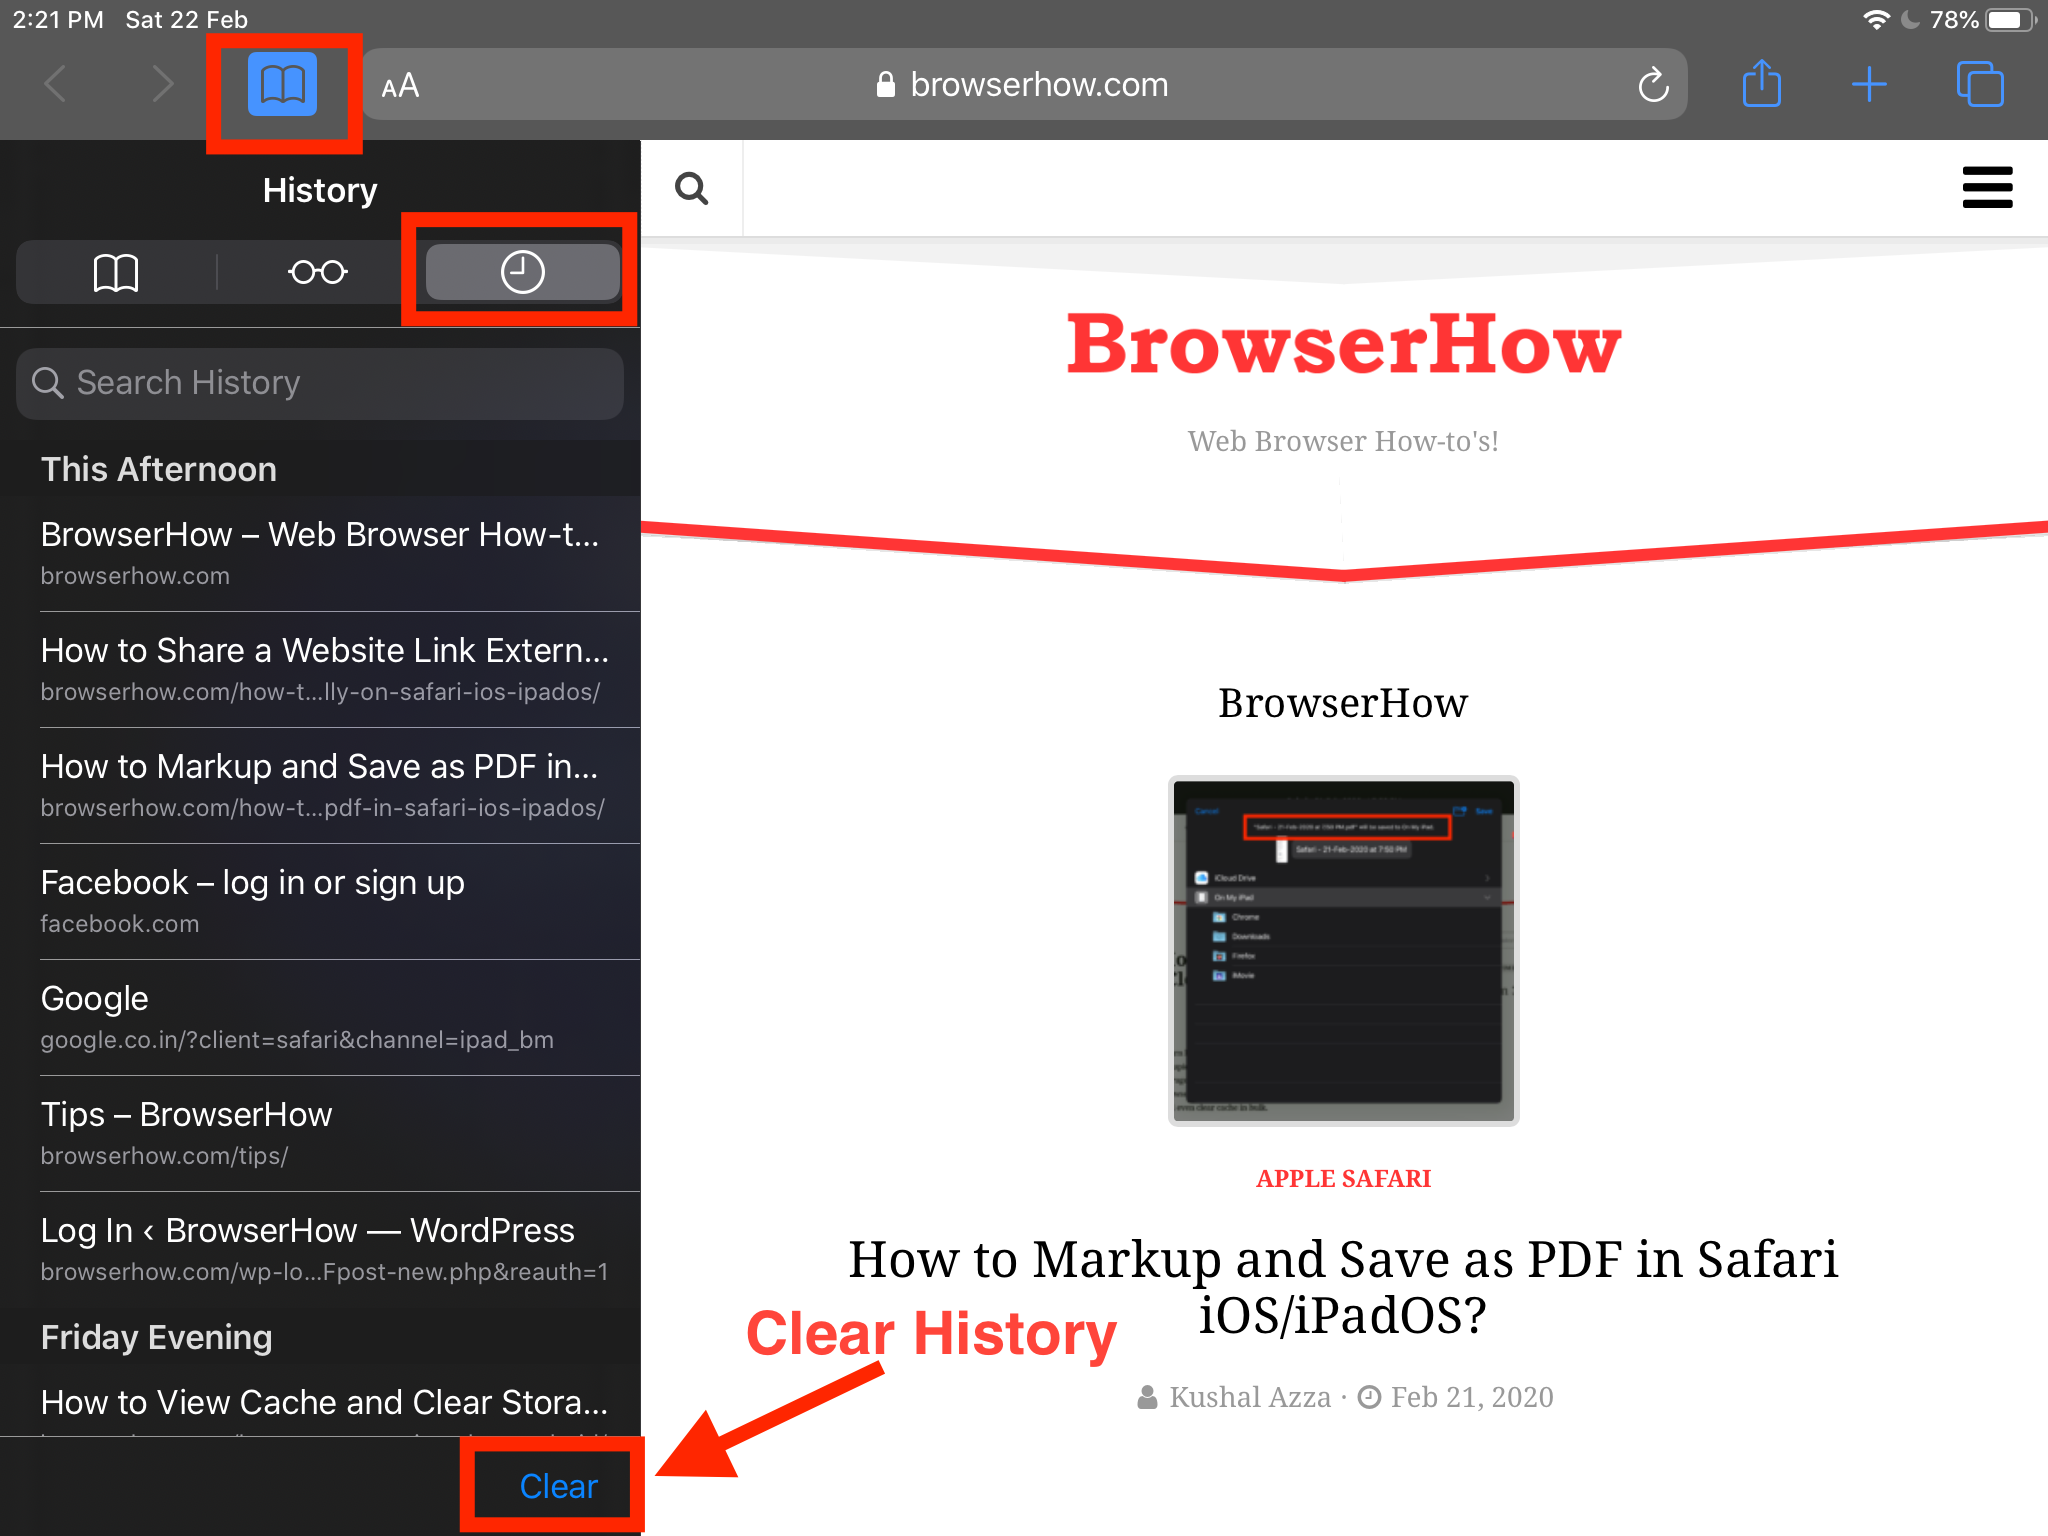 Clear Browser History from Safari on iOS and iPadOS